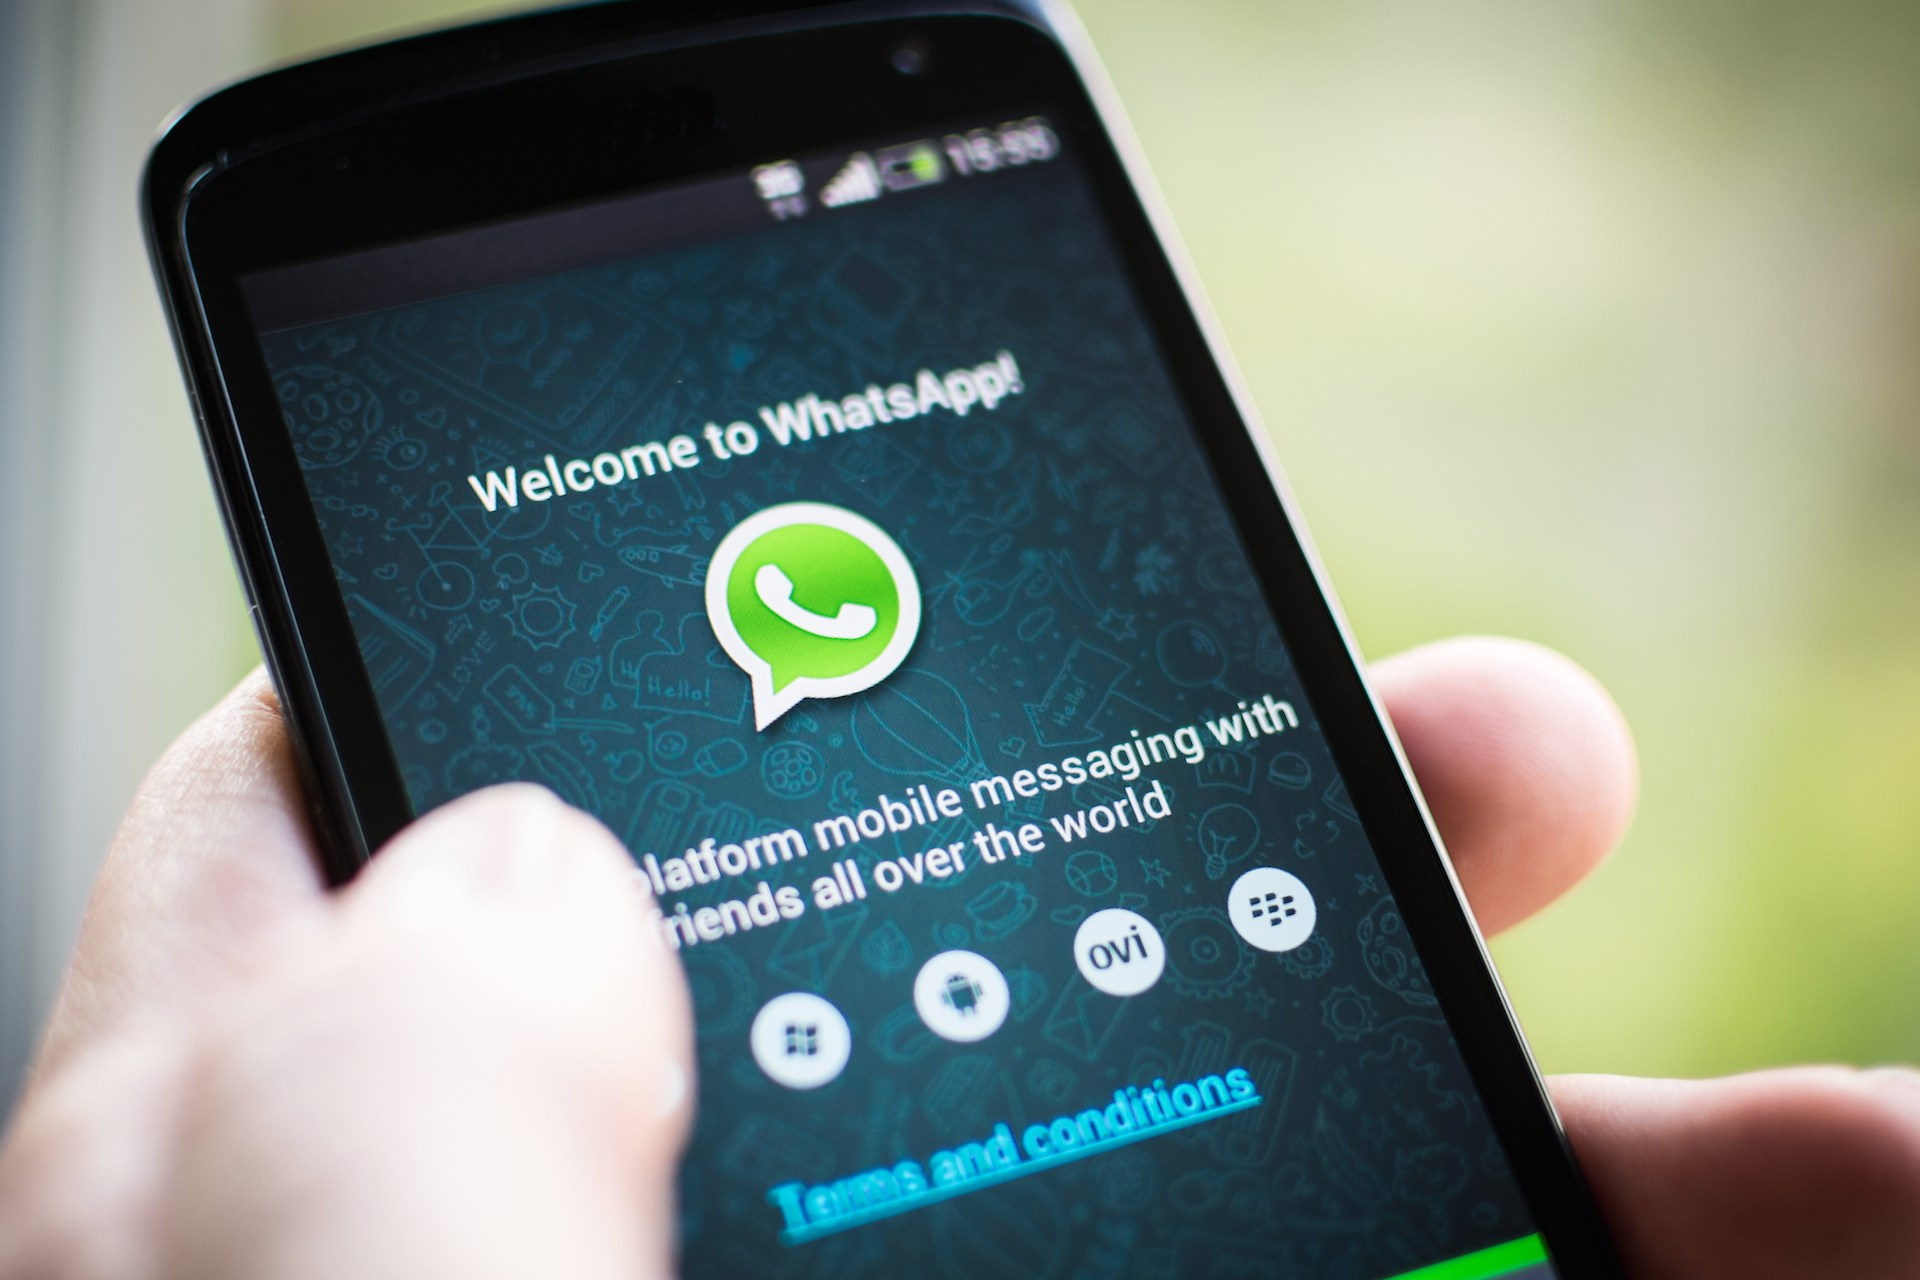 WhatsApp - A convenient communication tool